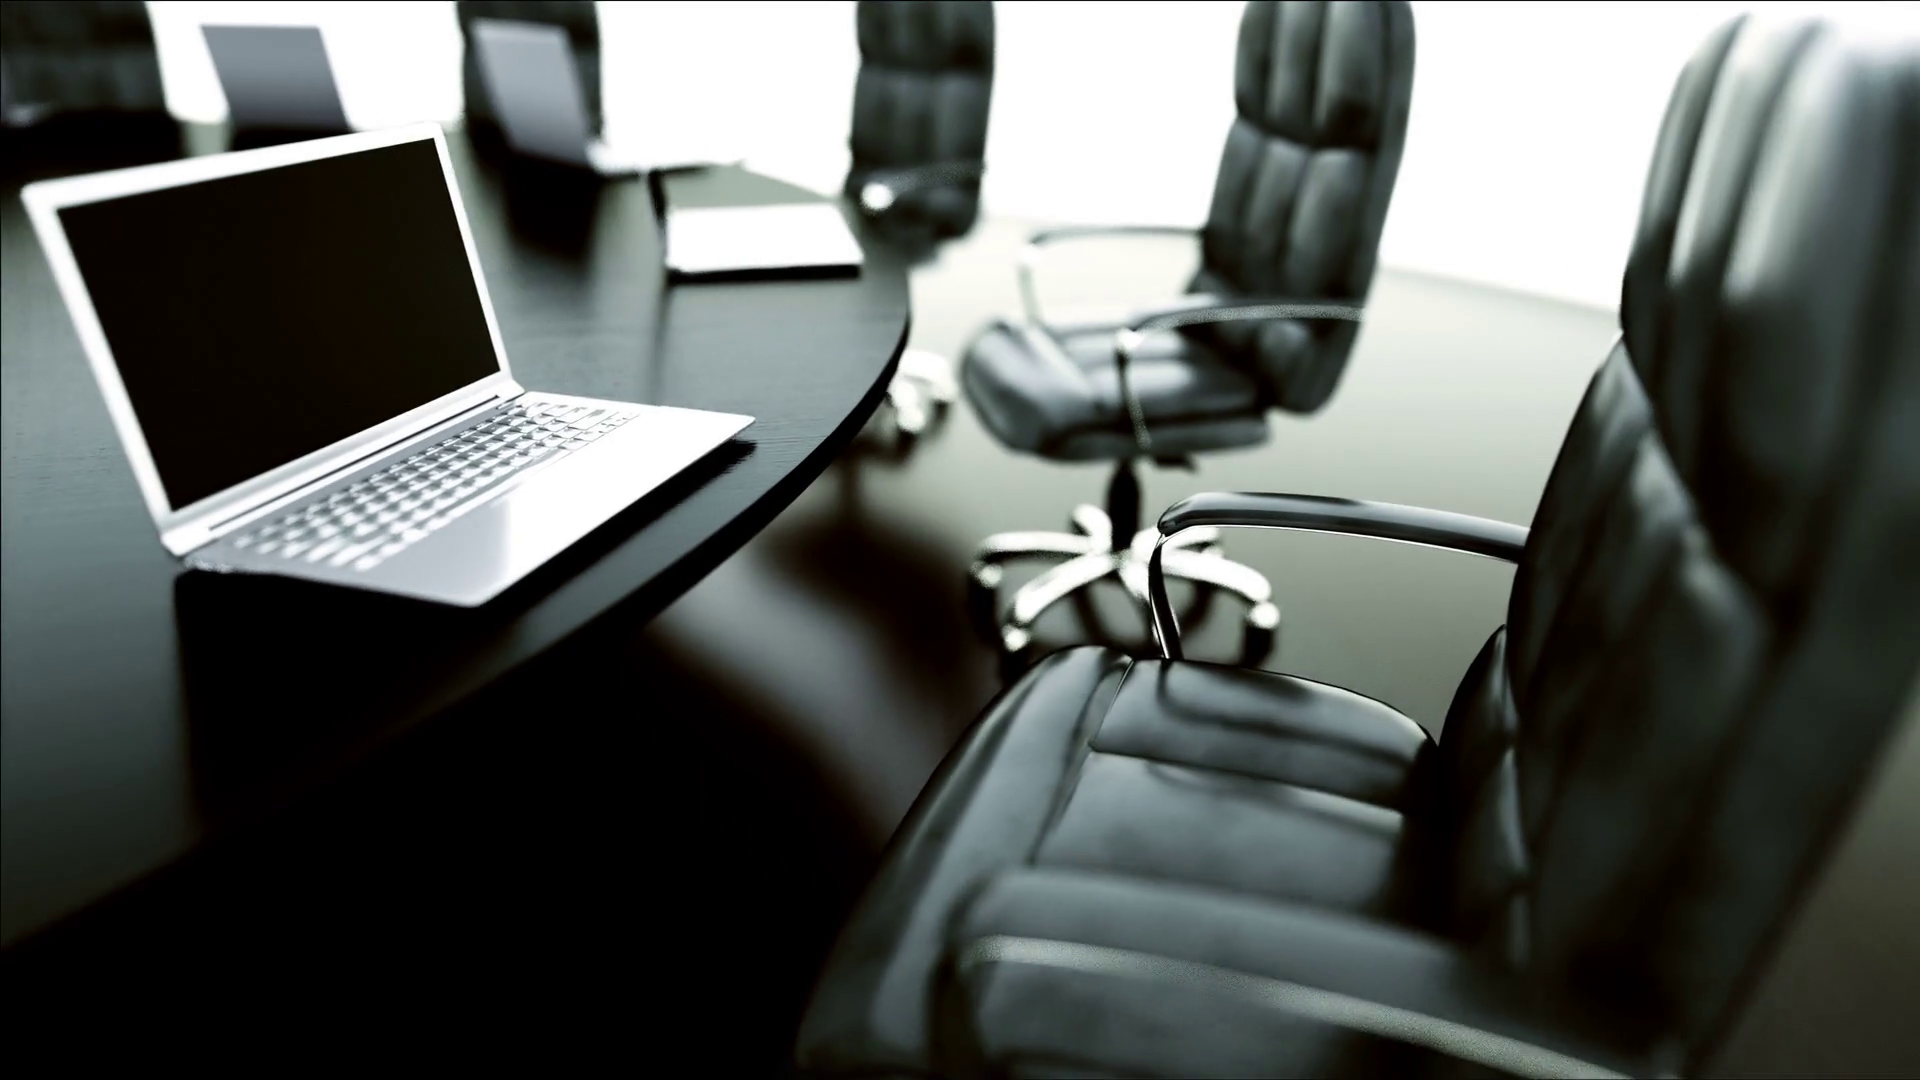 boardroom-meeting-room-and-conference-table-with-notebooks-business-concept_h4jm3r5kl_thumbnail-full01.png